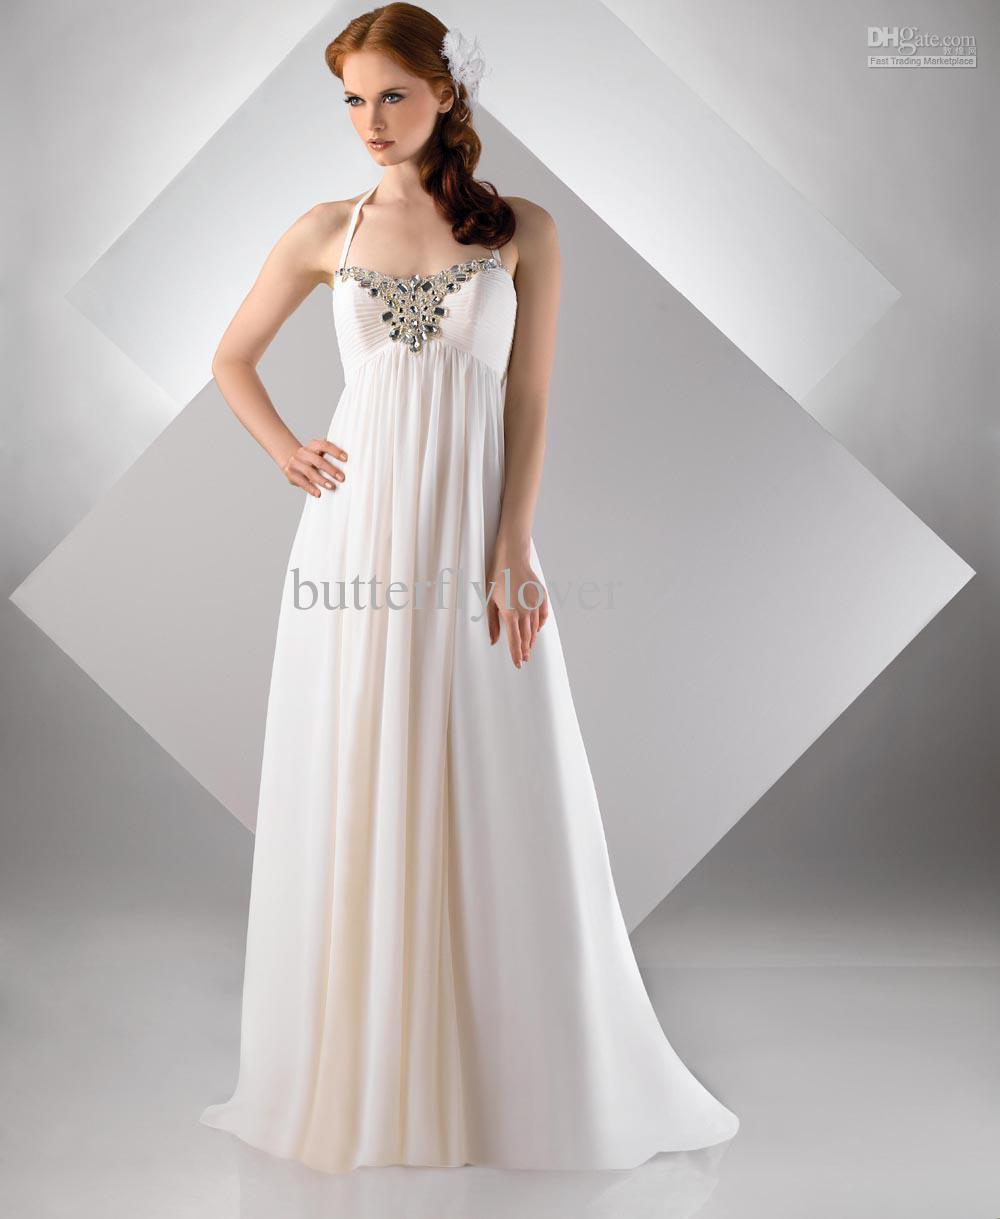 Maternity wedding dresses fantastical wedding stylings for Pregnancy dress for wedding